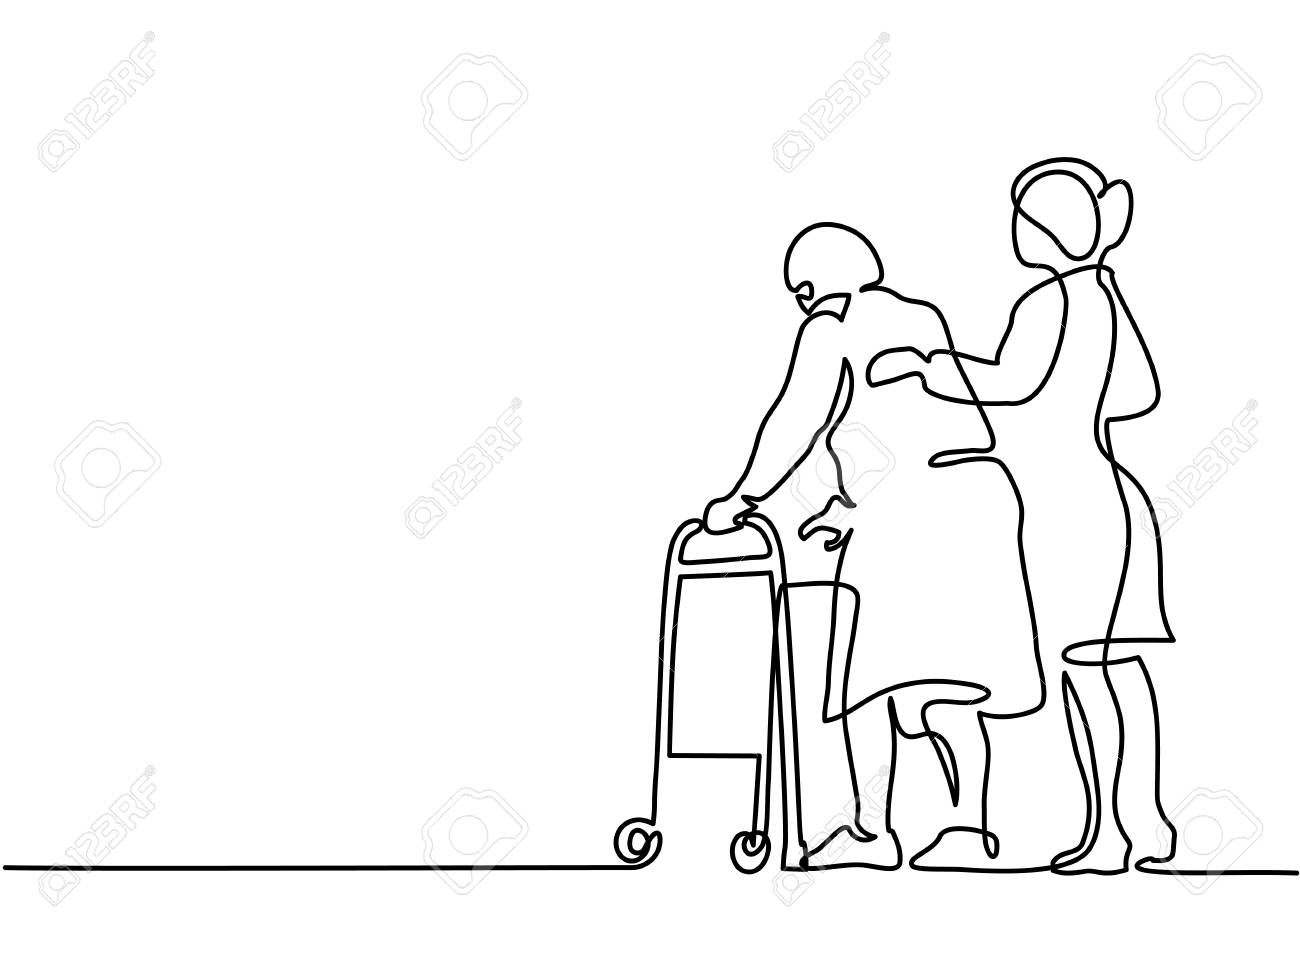 Continuous line drawing. Young woman help old woman using a walking frame. Vector illustration - 88860439